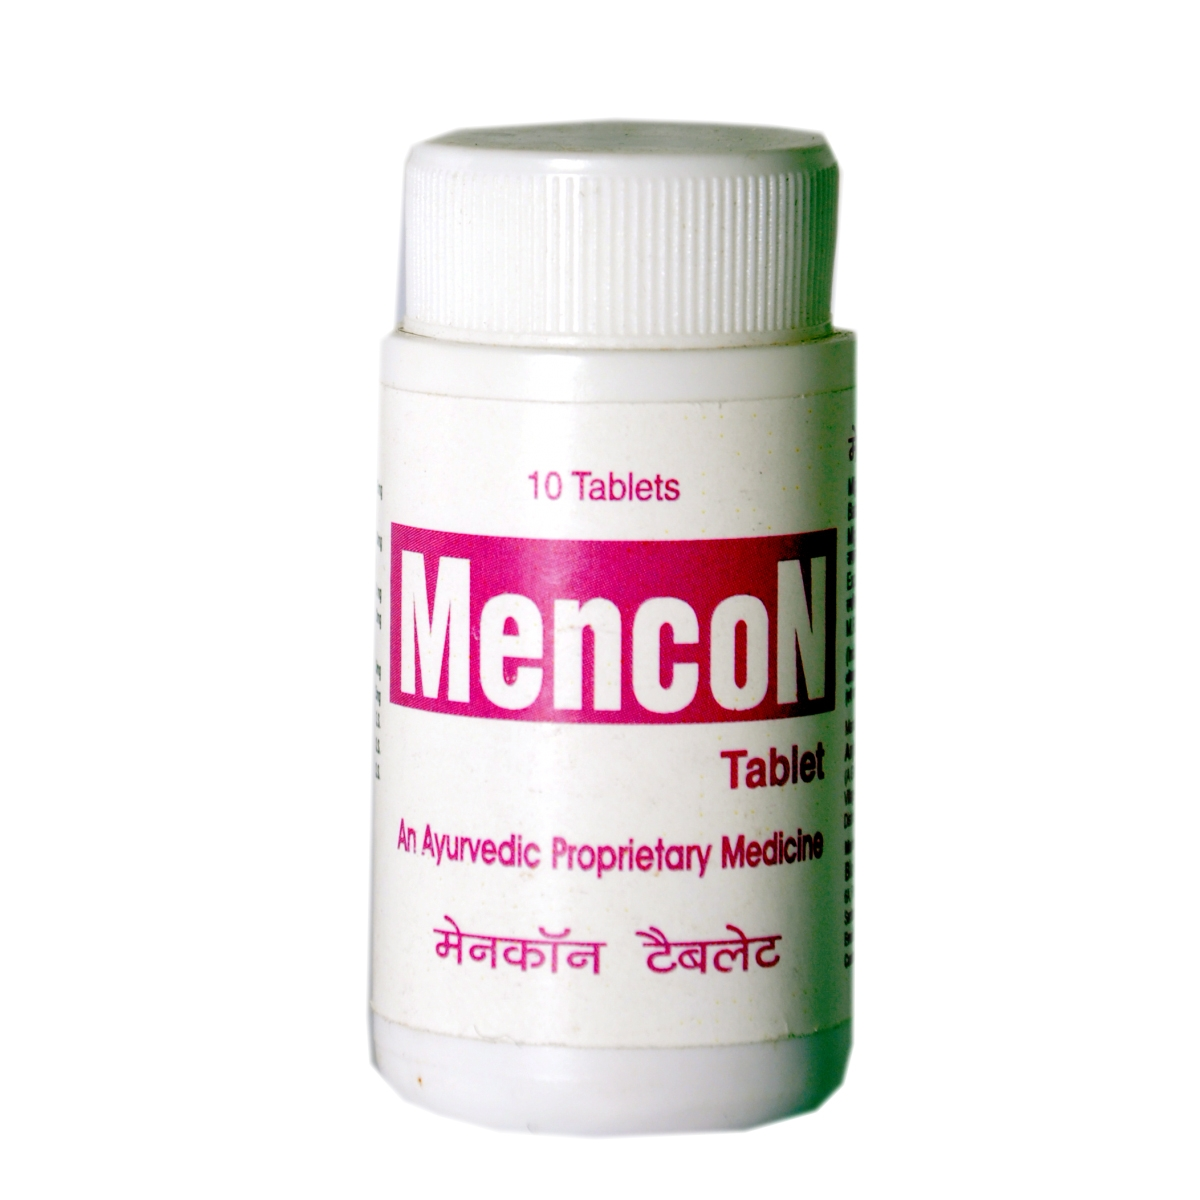 Mencon Tablet In Sri Ganganagar